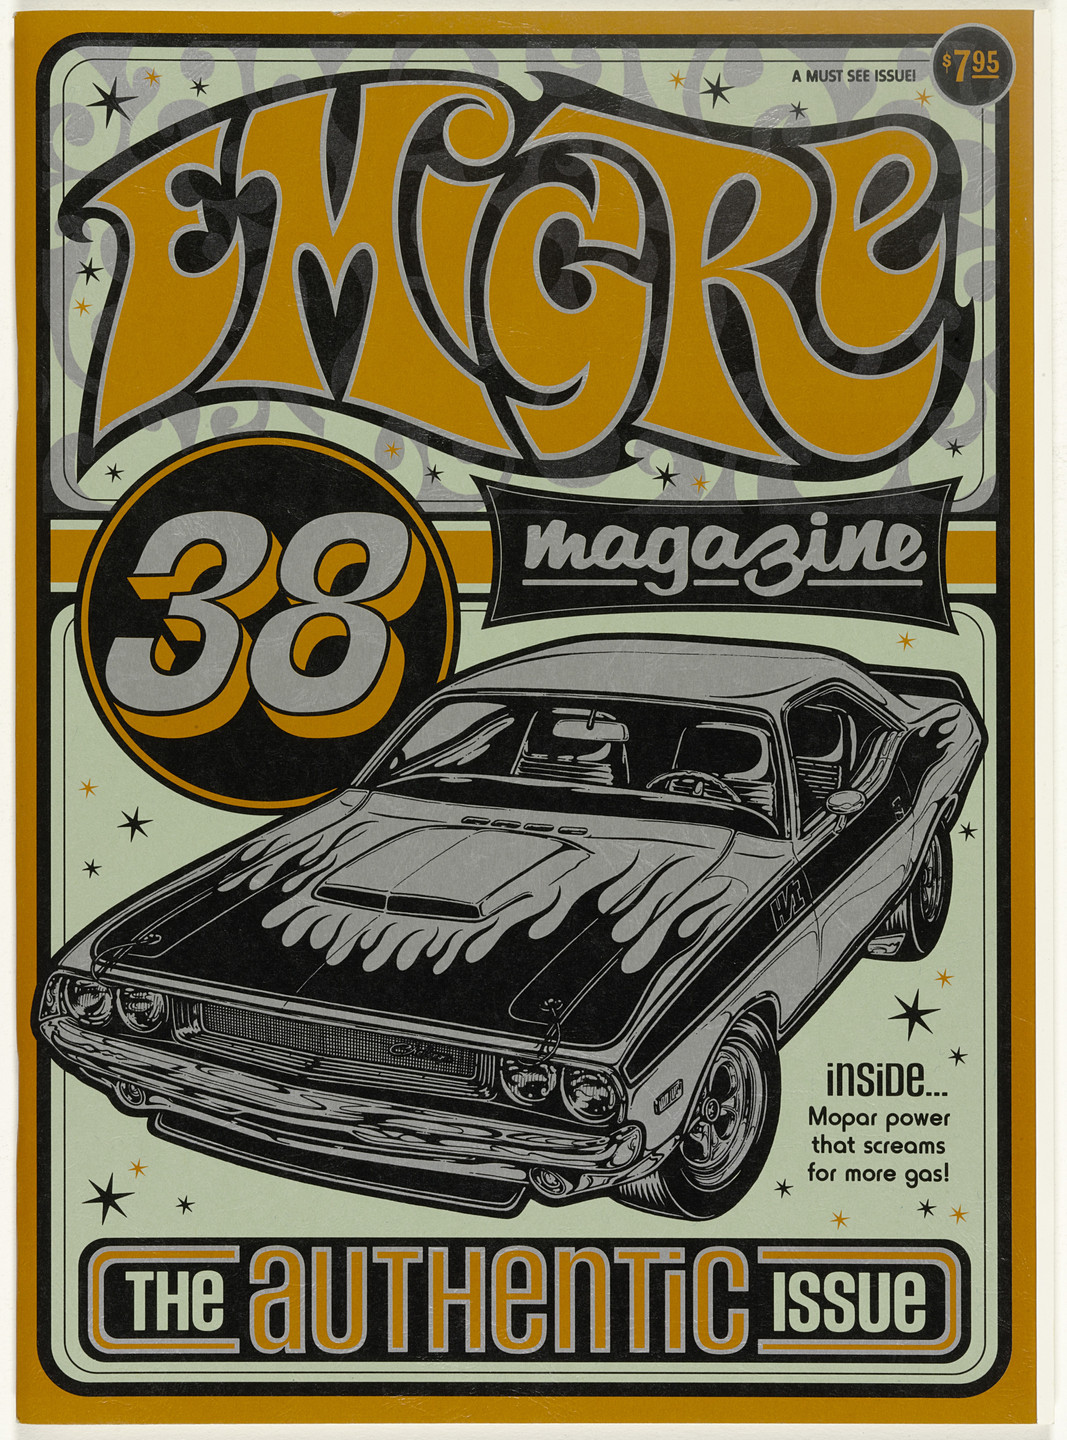 Emigre Inc., Rudy VanderLans, Zuzana Licko. Emigre 38, The Authentic Issue. 1996